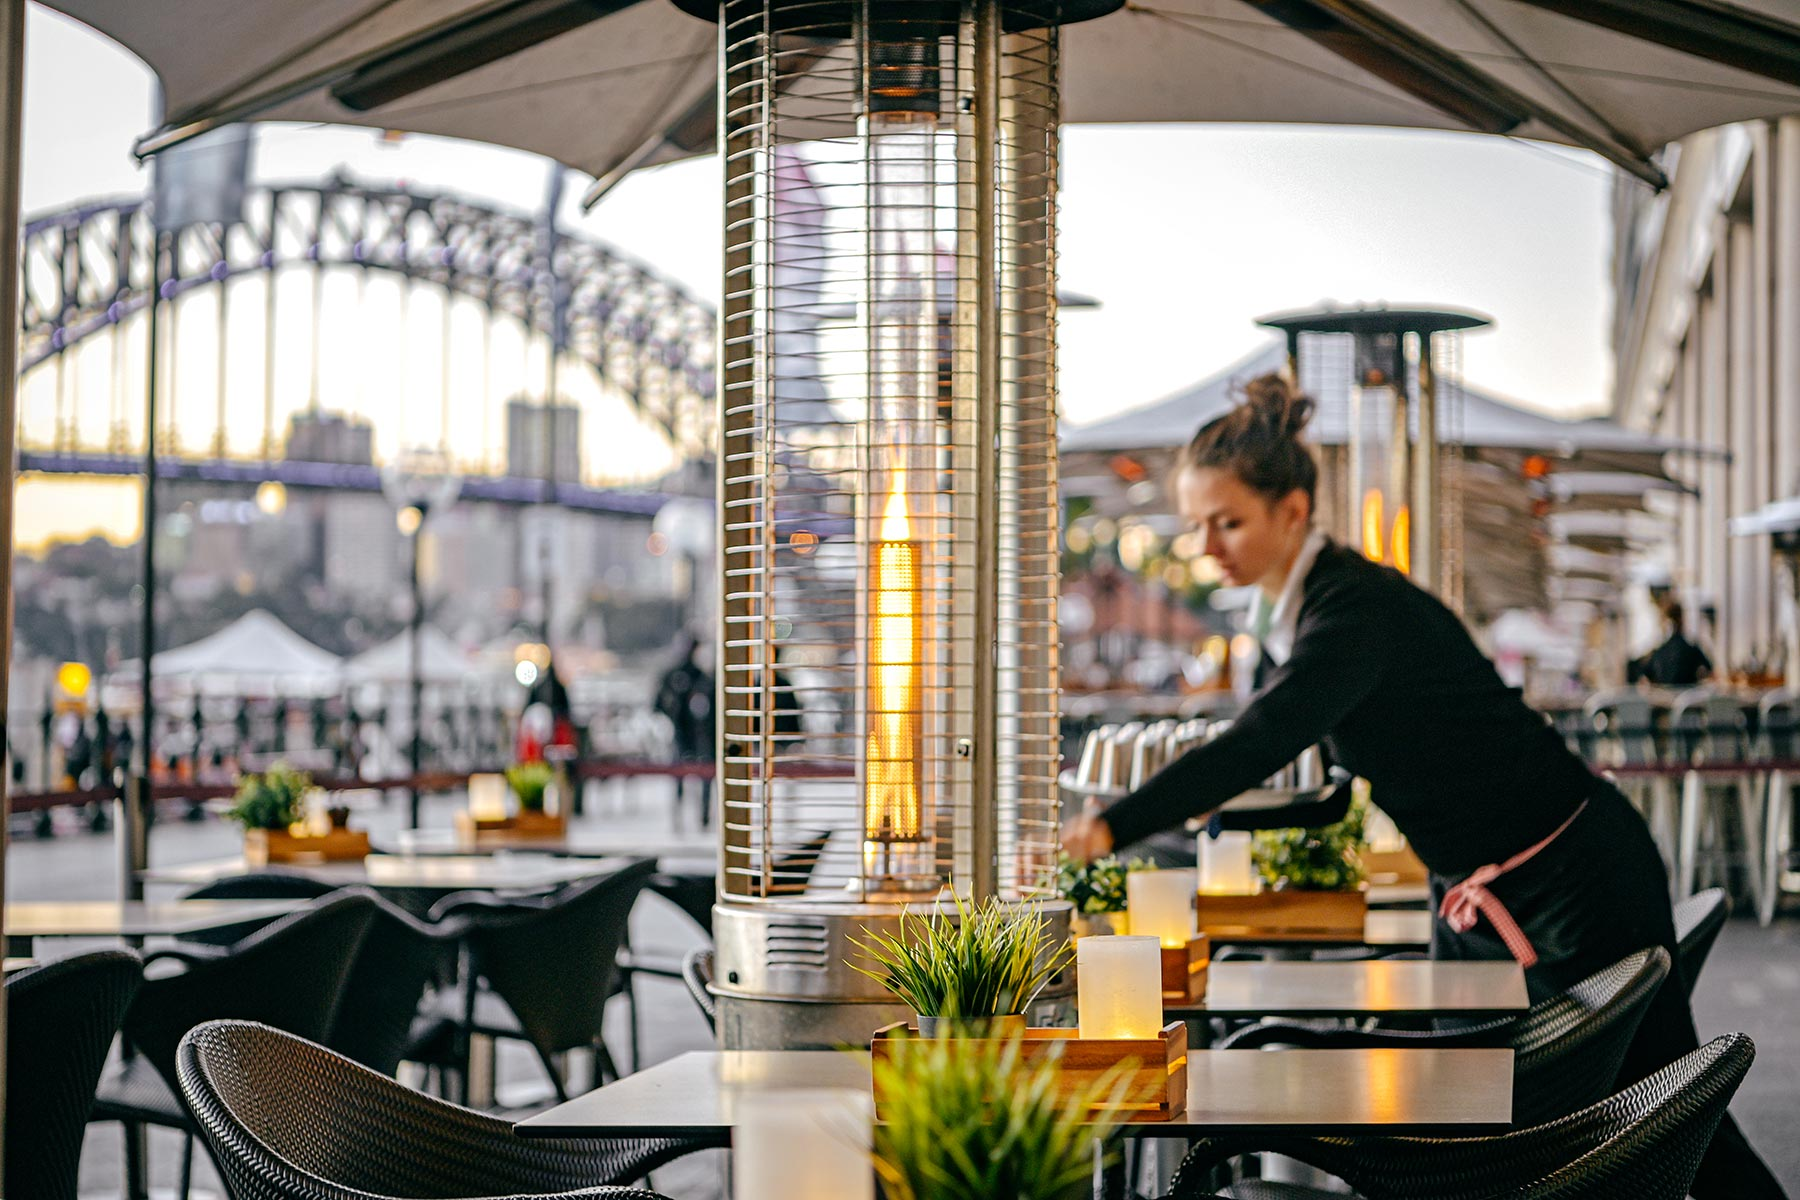 Eastbank Cafe Restaurant – waitress setting table on Circular Quay promenade